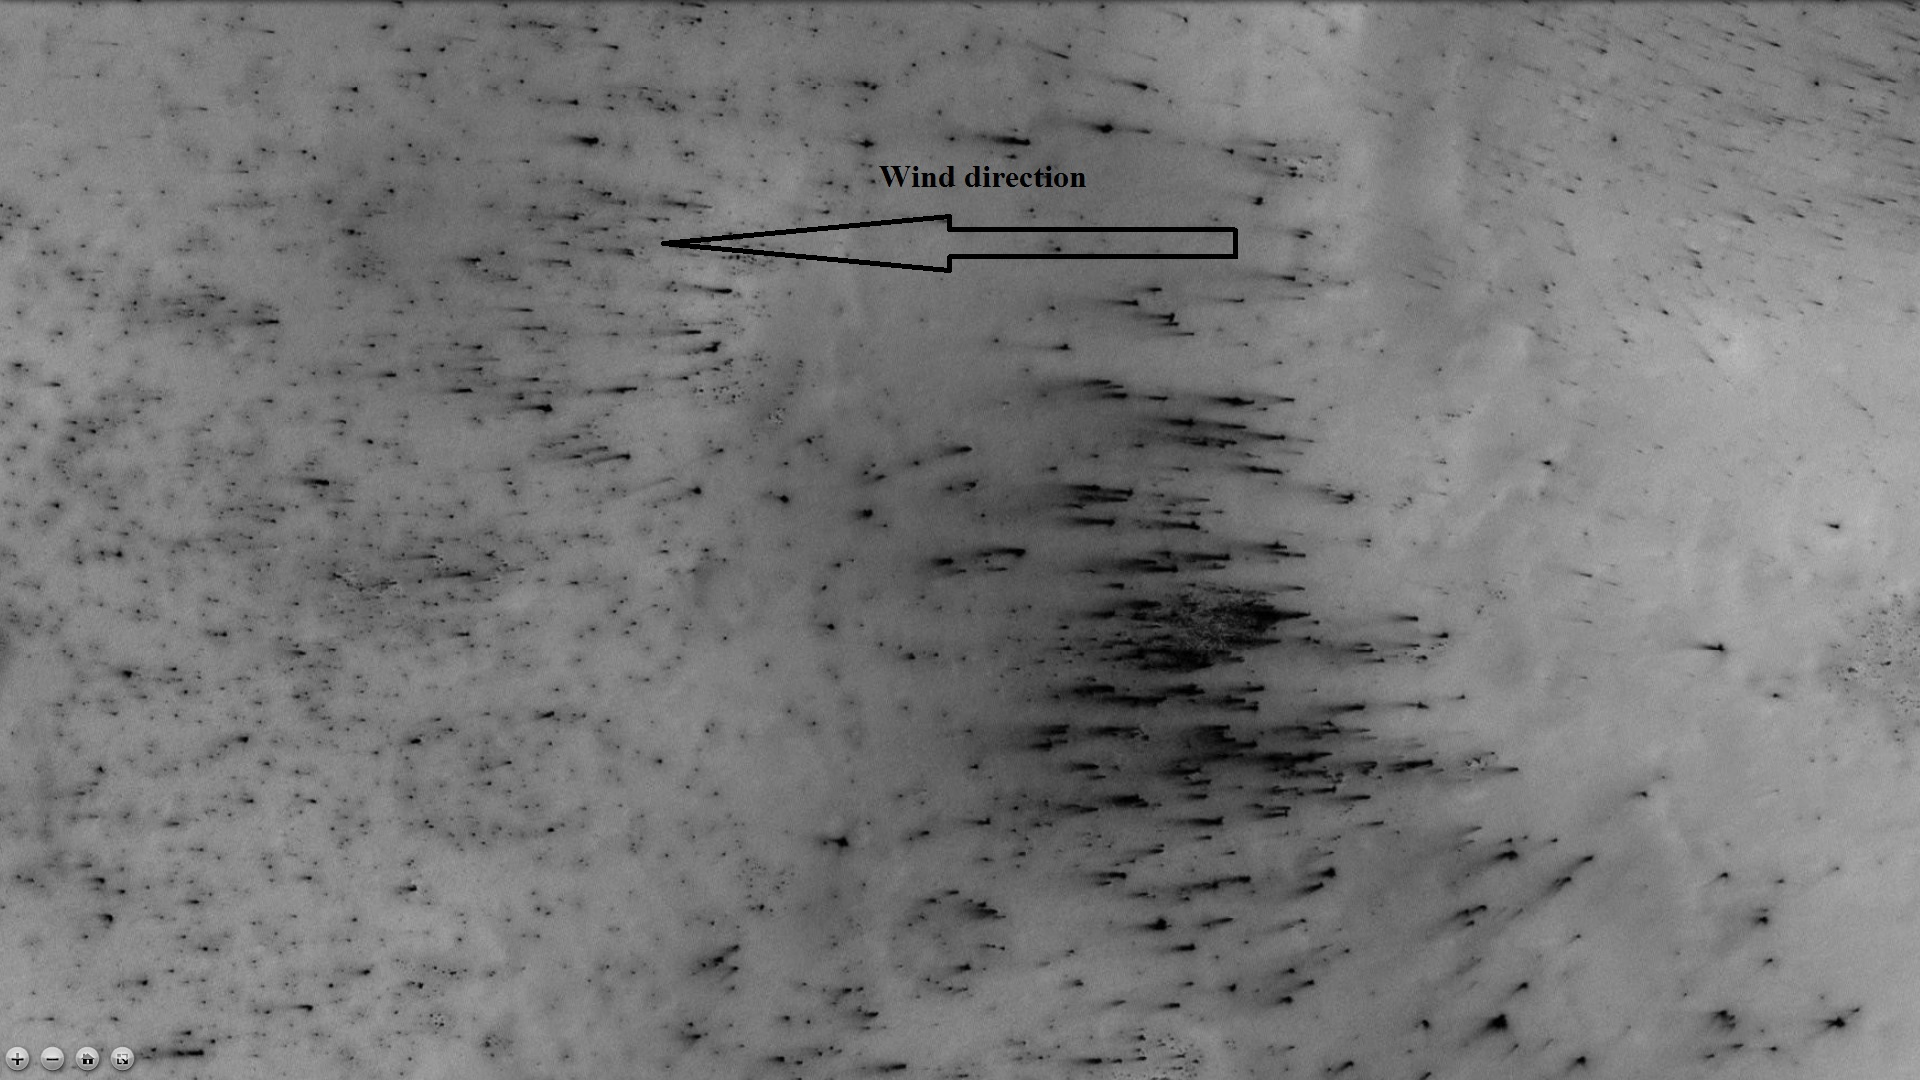 Dust trails in Main crater, as seen by CTX camera (on Mars Reconnaissance Orbiter). Arrow indicates wind direction. In the spring, as the temperature rises, dry ice turns into a pressurized gas, and then blows through a weak spot and carries with it dust. If there is a wind, the dust is deposited in an elongated form as in this image.